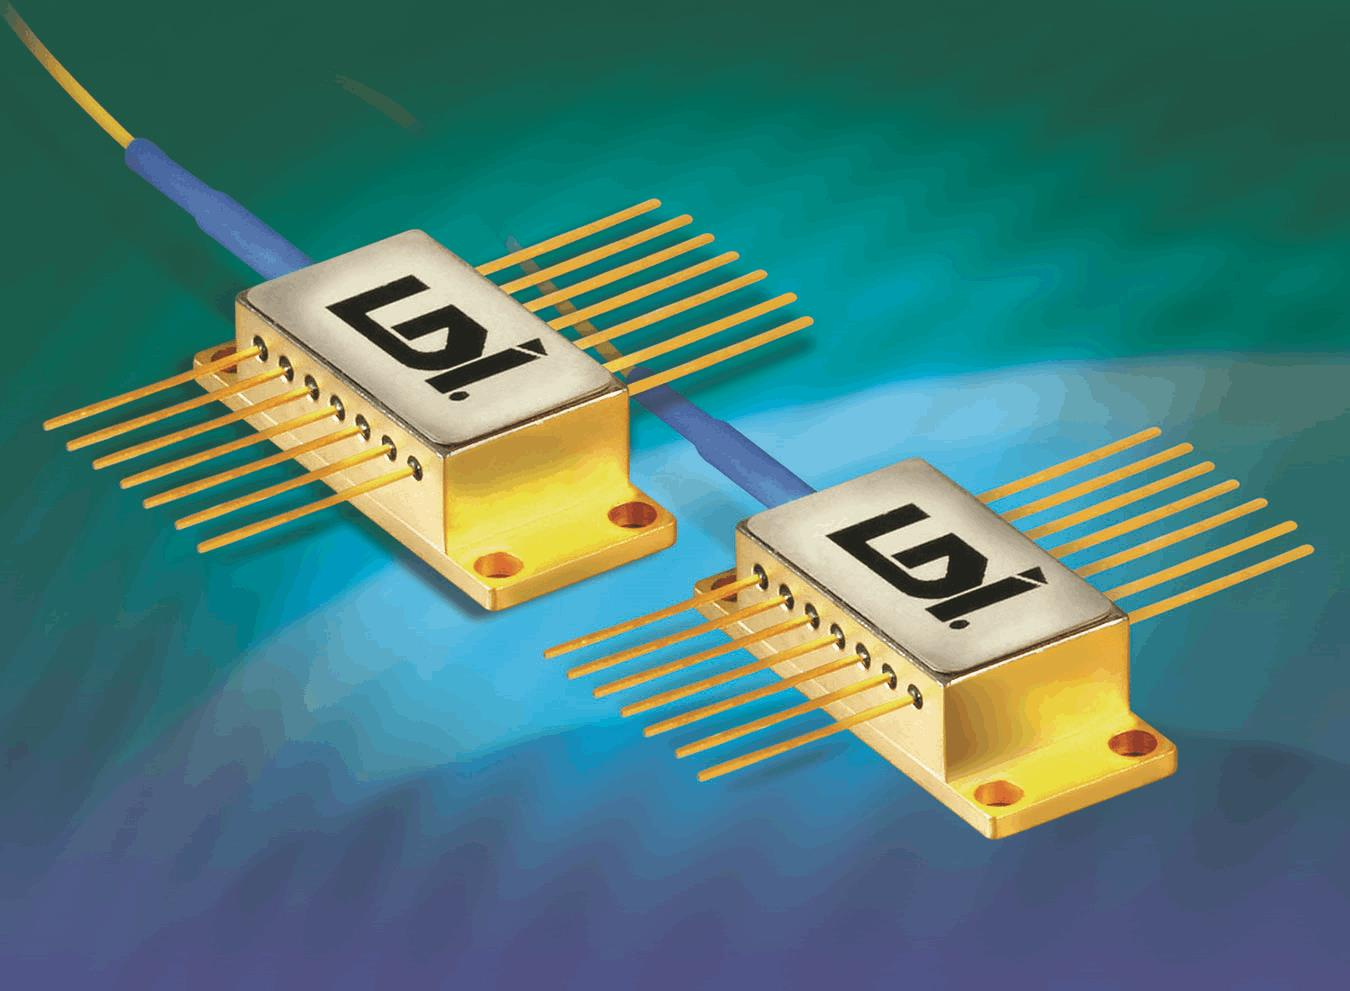 Osi Laser Diode To Showcase High